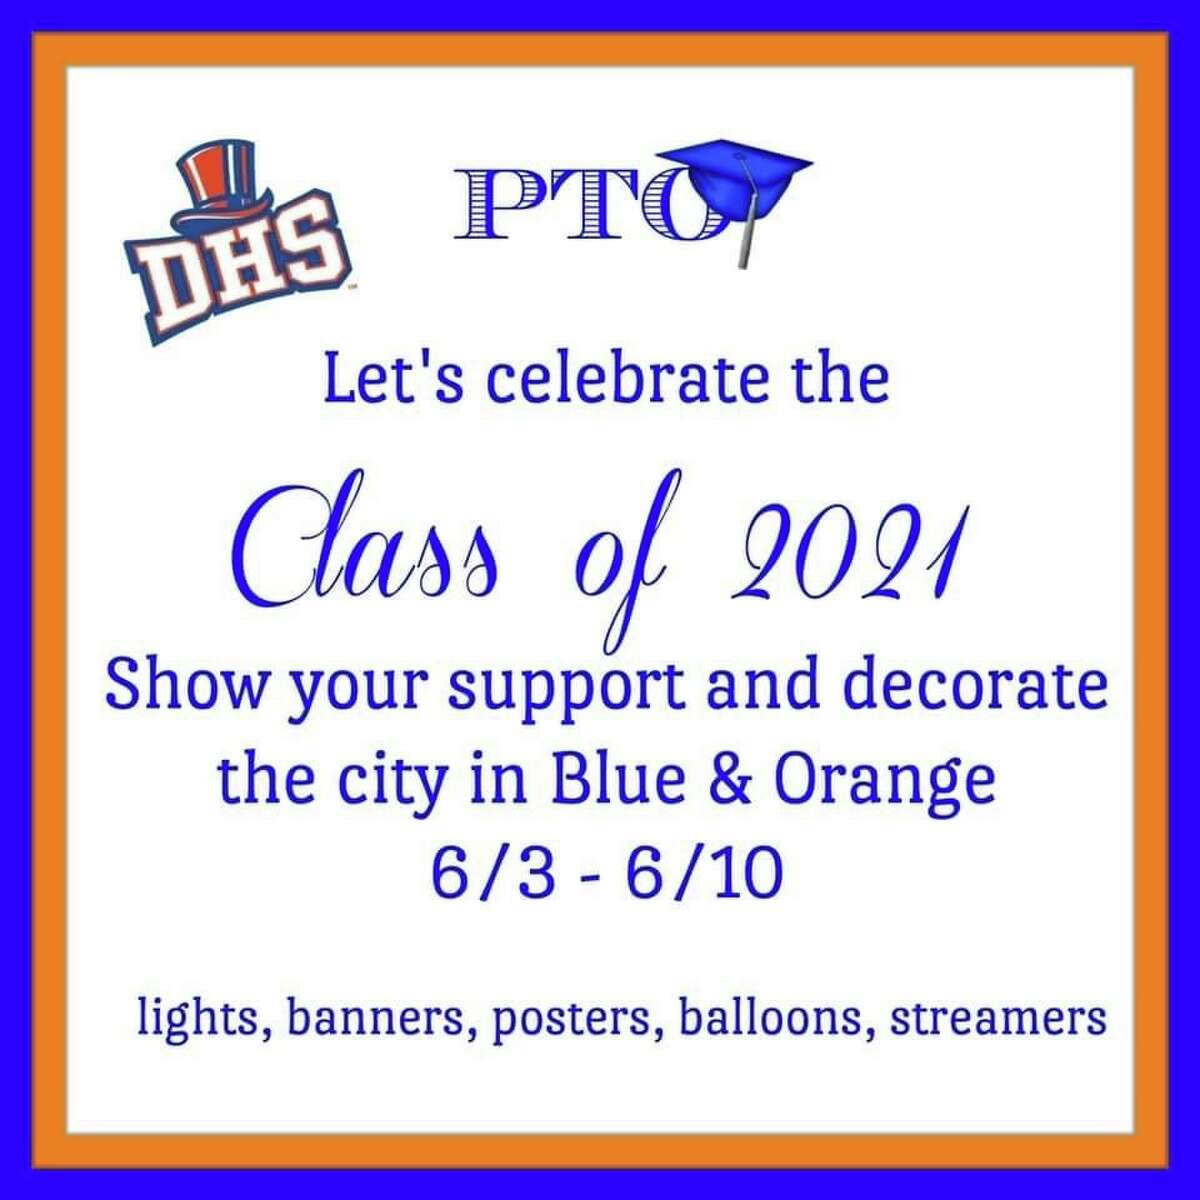 The Parent Teacher Organization plans to decorate the city in blue and orange to celebrate Danbury High School's Class of 2021.